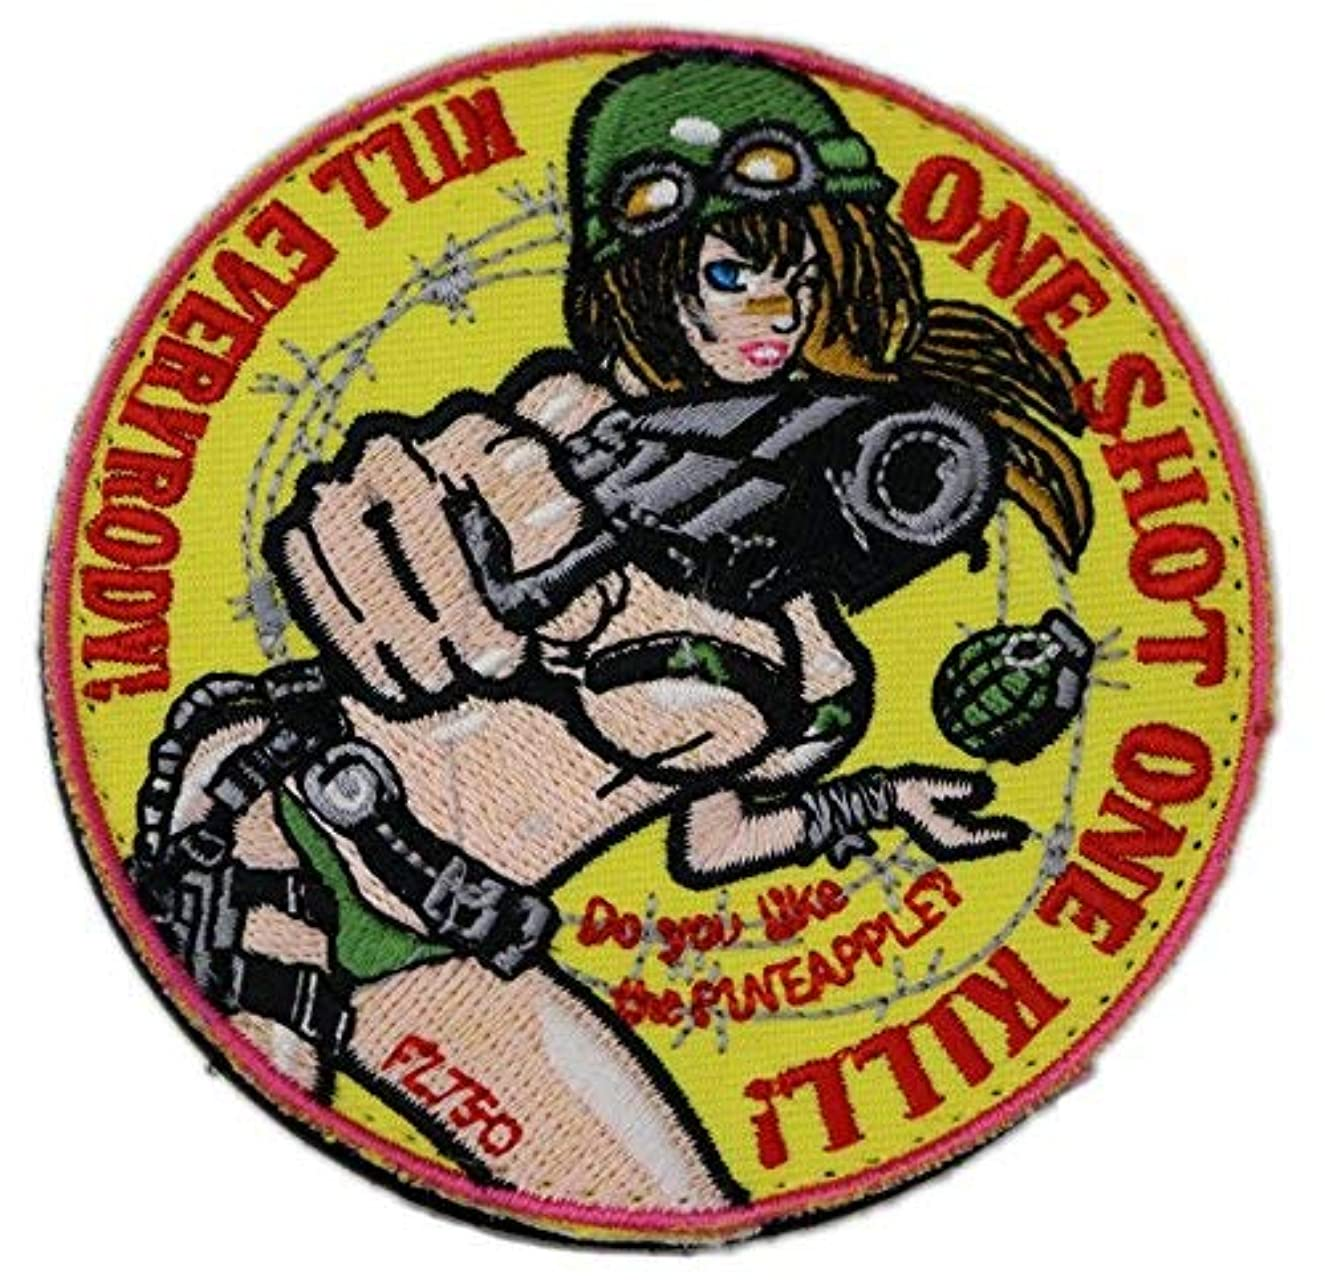 [Japan Import] 100% Embroidery Verclo Patches Weapon Girl A0035 (Type2)